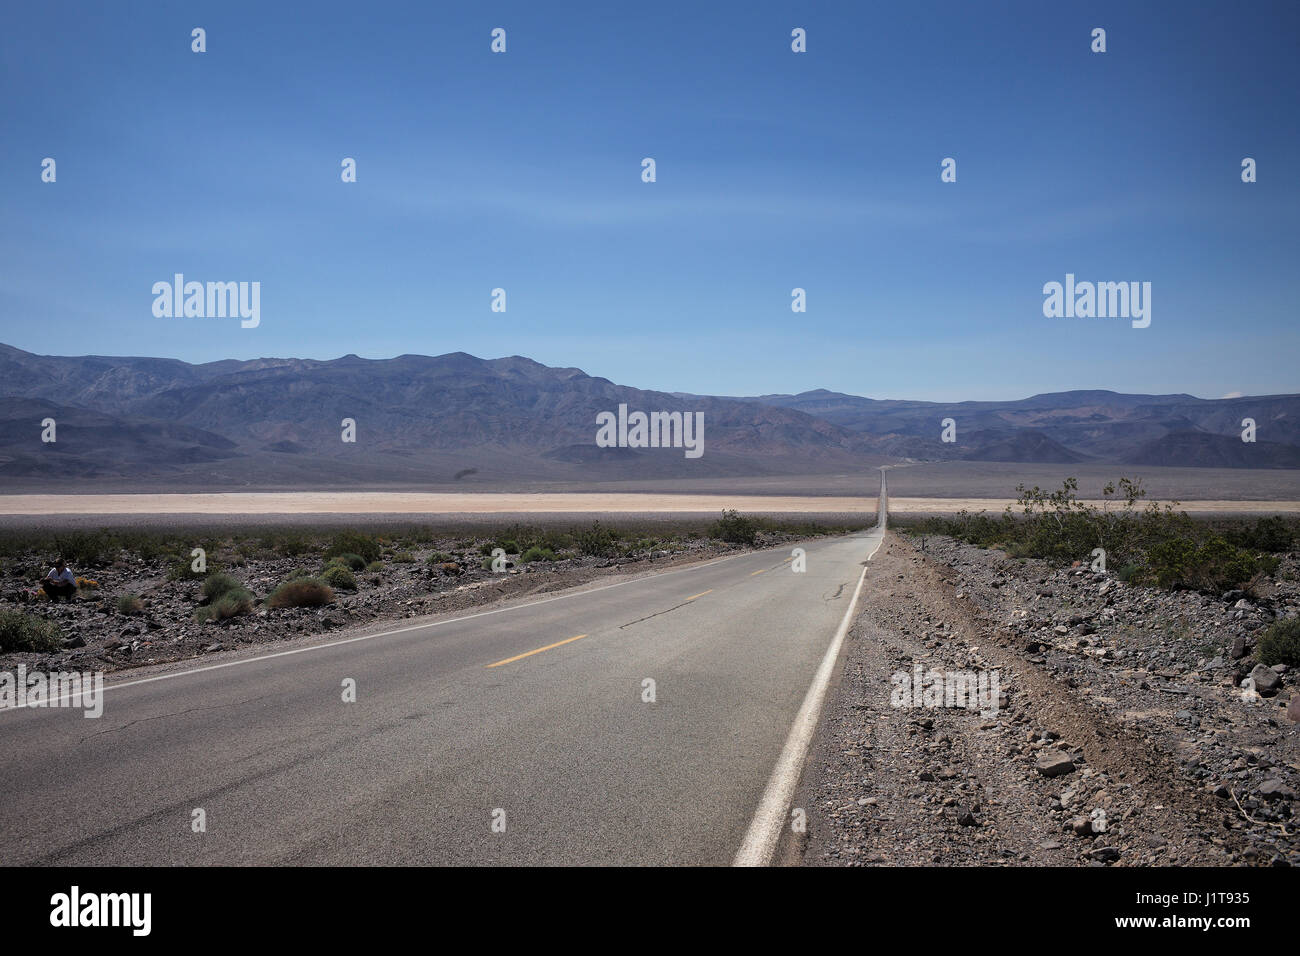 Highway 90 in Death Valley - Stock Image